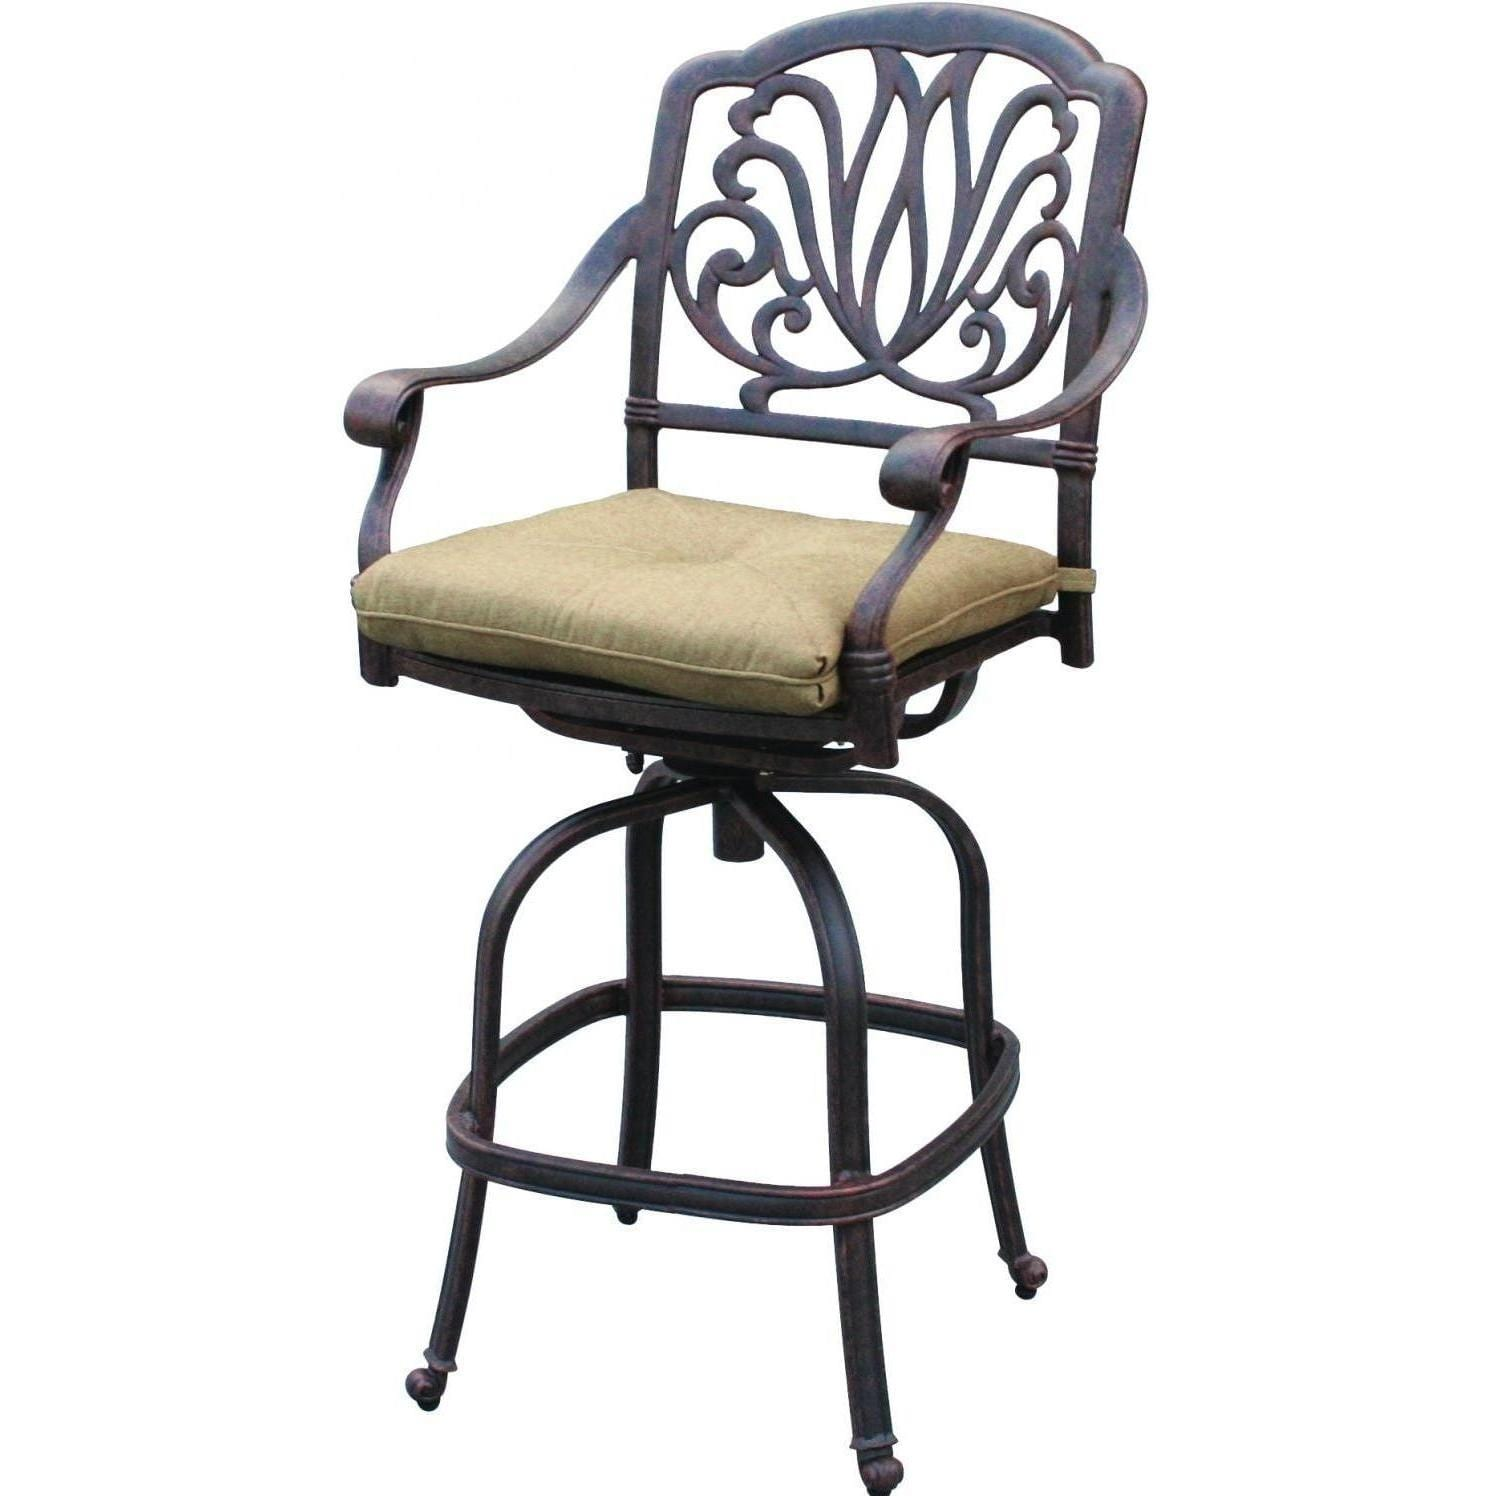 and decorating look size in height rustic house full outdoor stool small bar chairs modern deck get to dining furniture table stools set patio vintage of